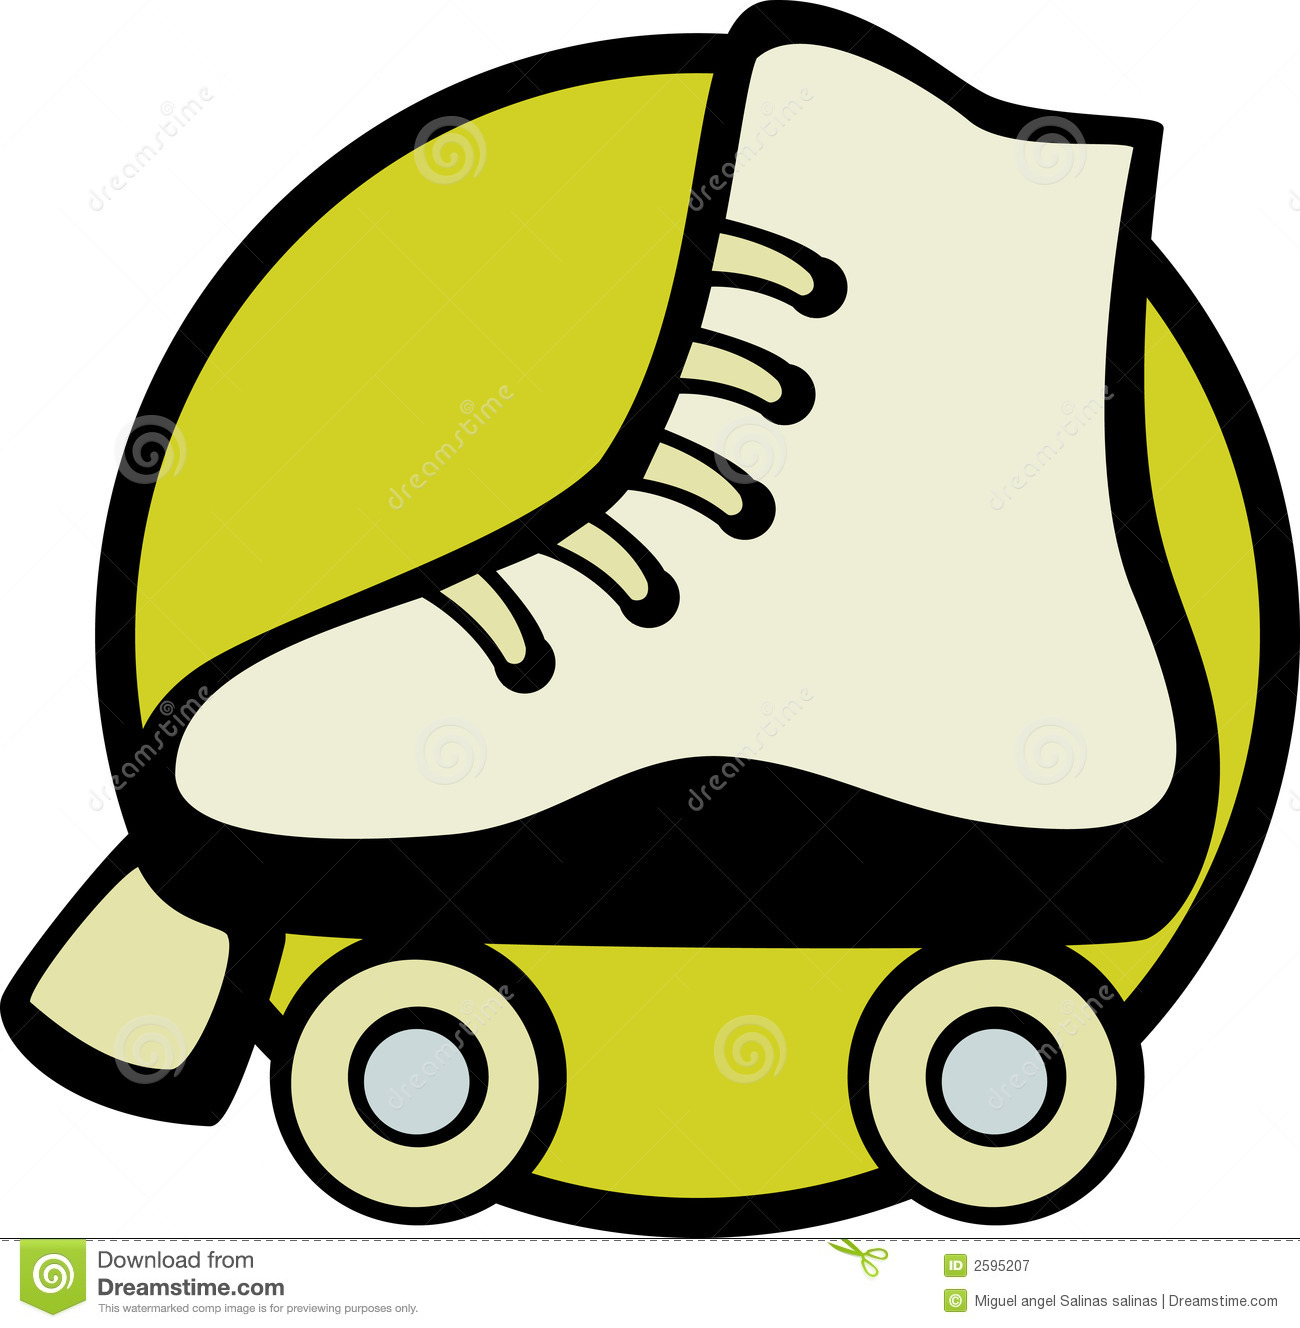 80s Roller Skating Clipart Image Galleries   Imagekb Com